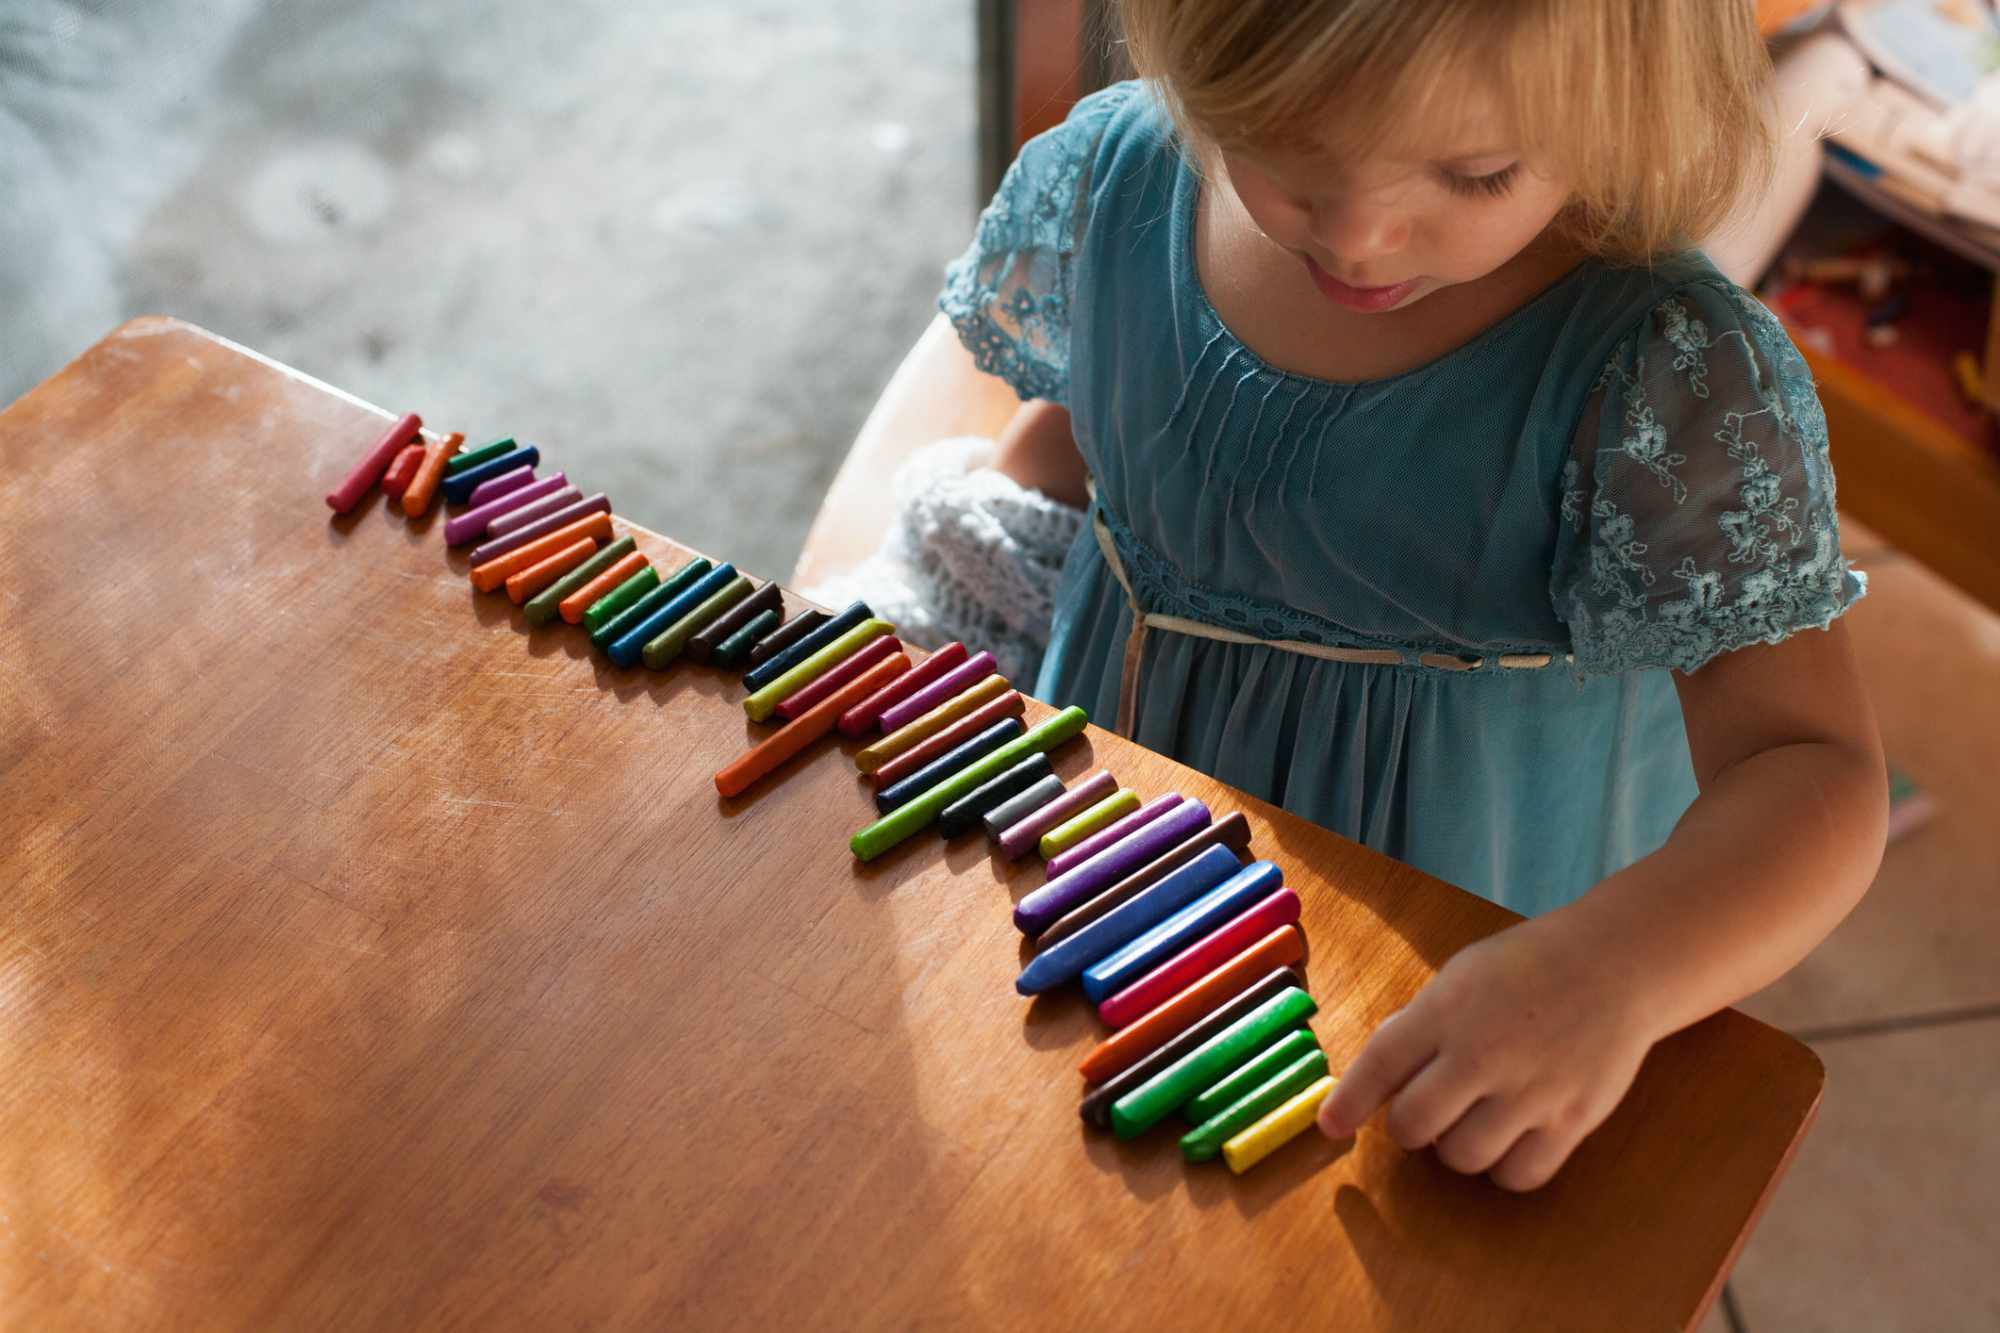 A child lining up crayons